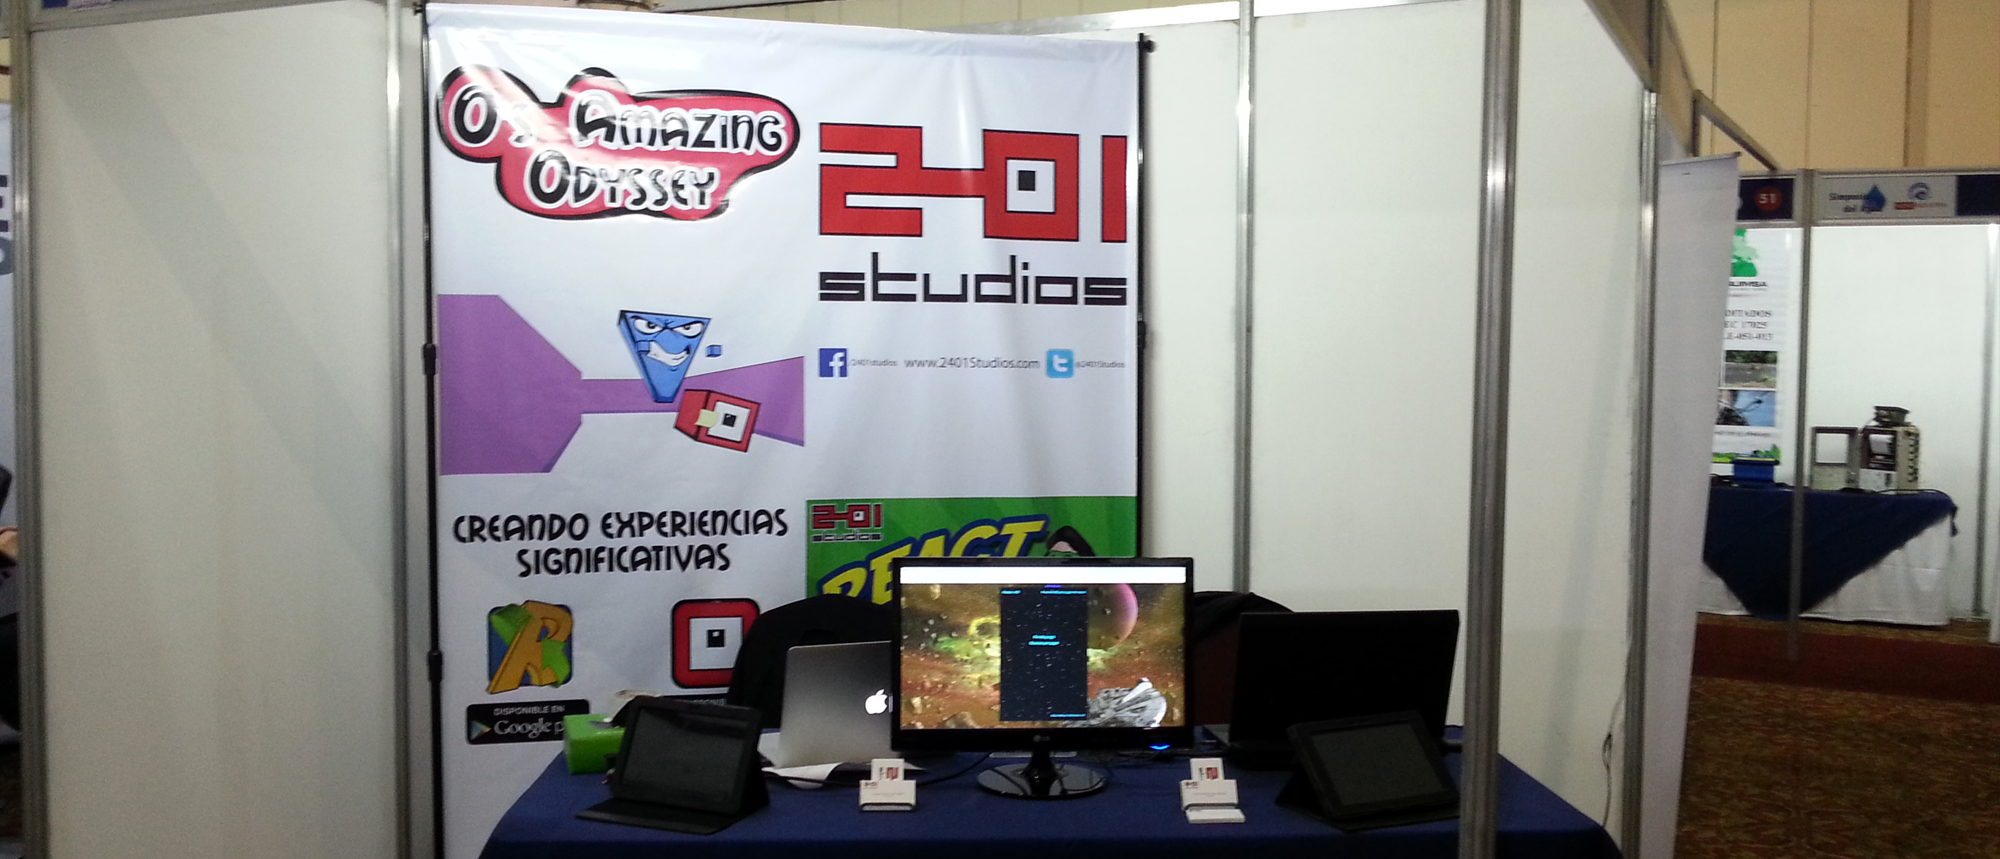 2401 Studios – Science, Technology and Innovation Conference